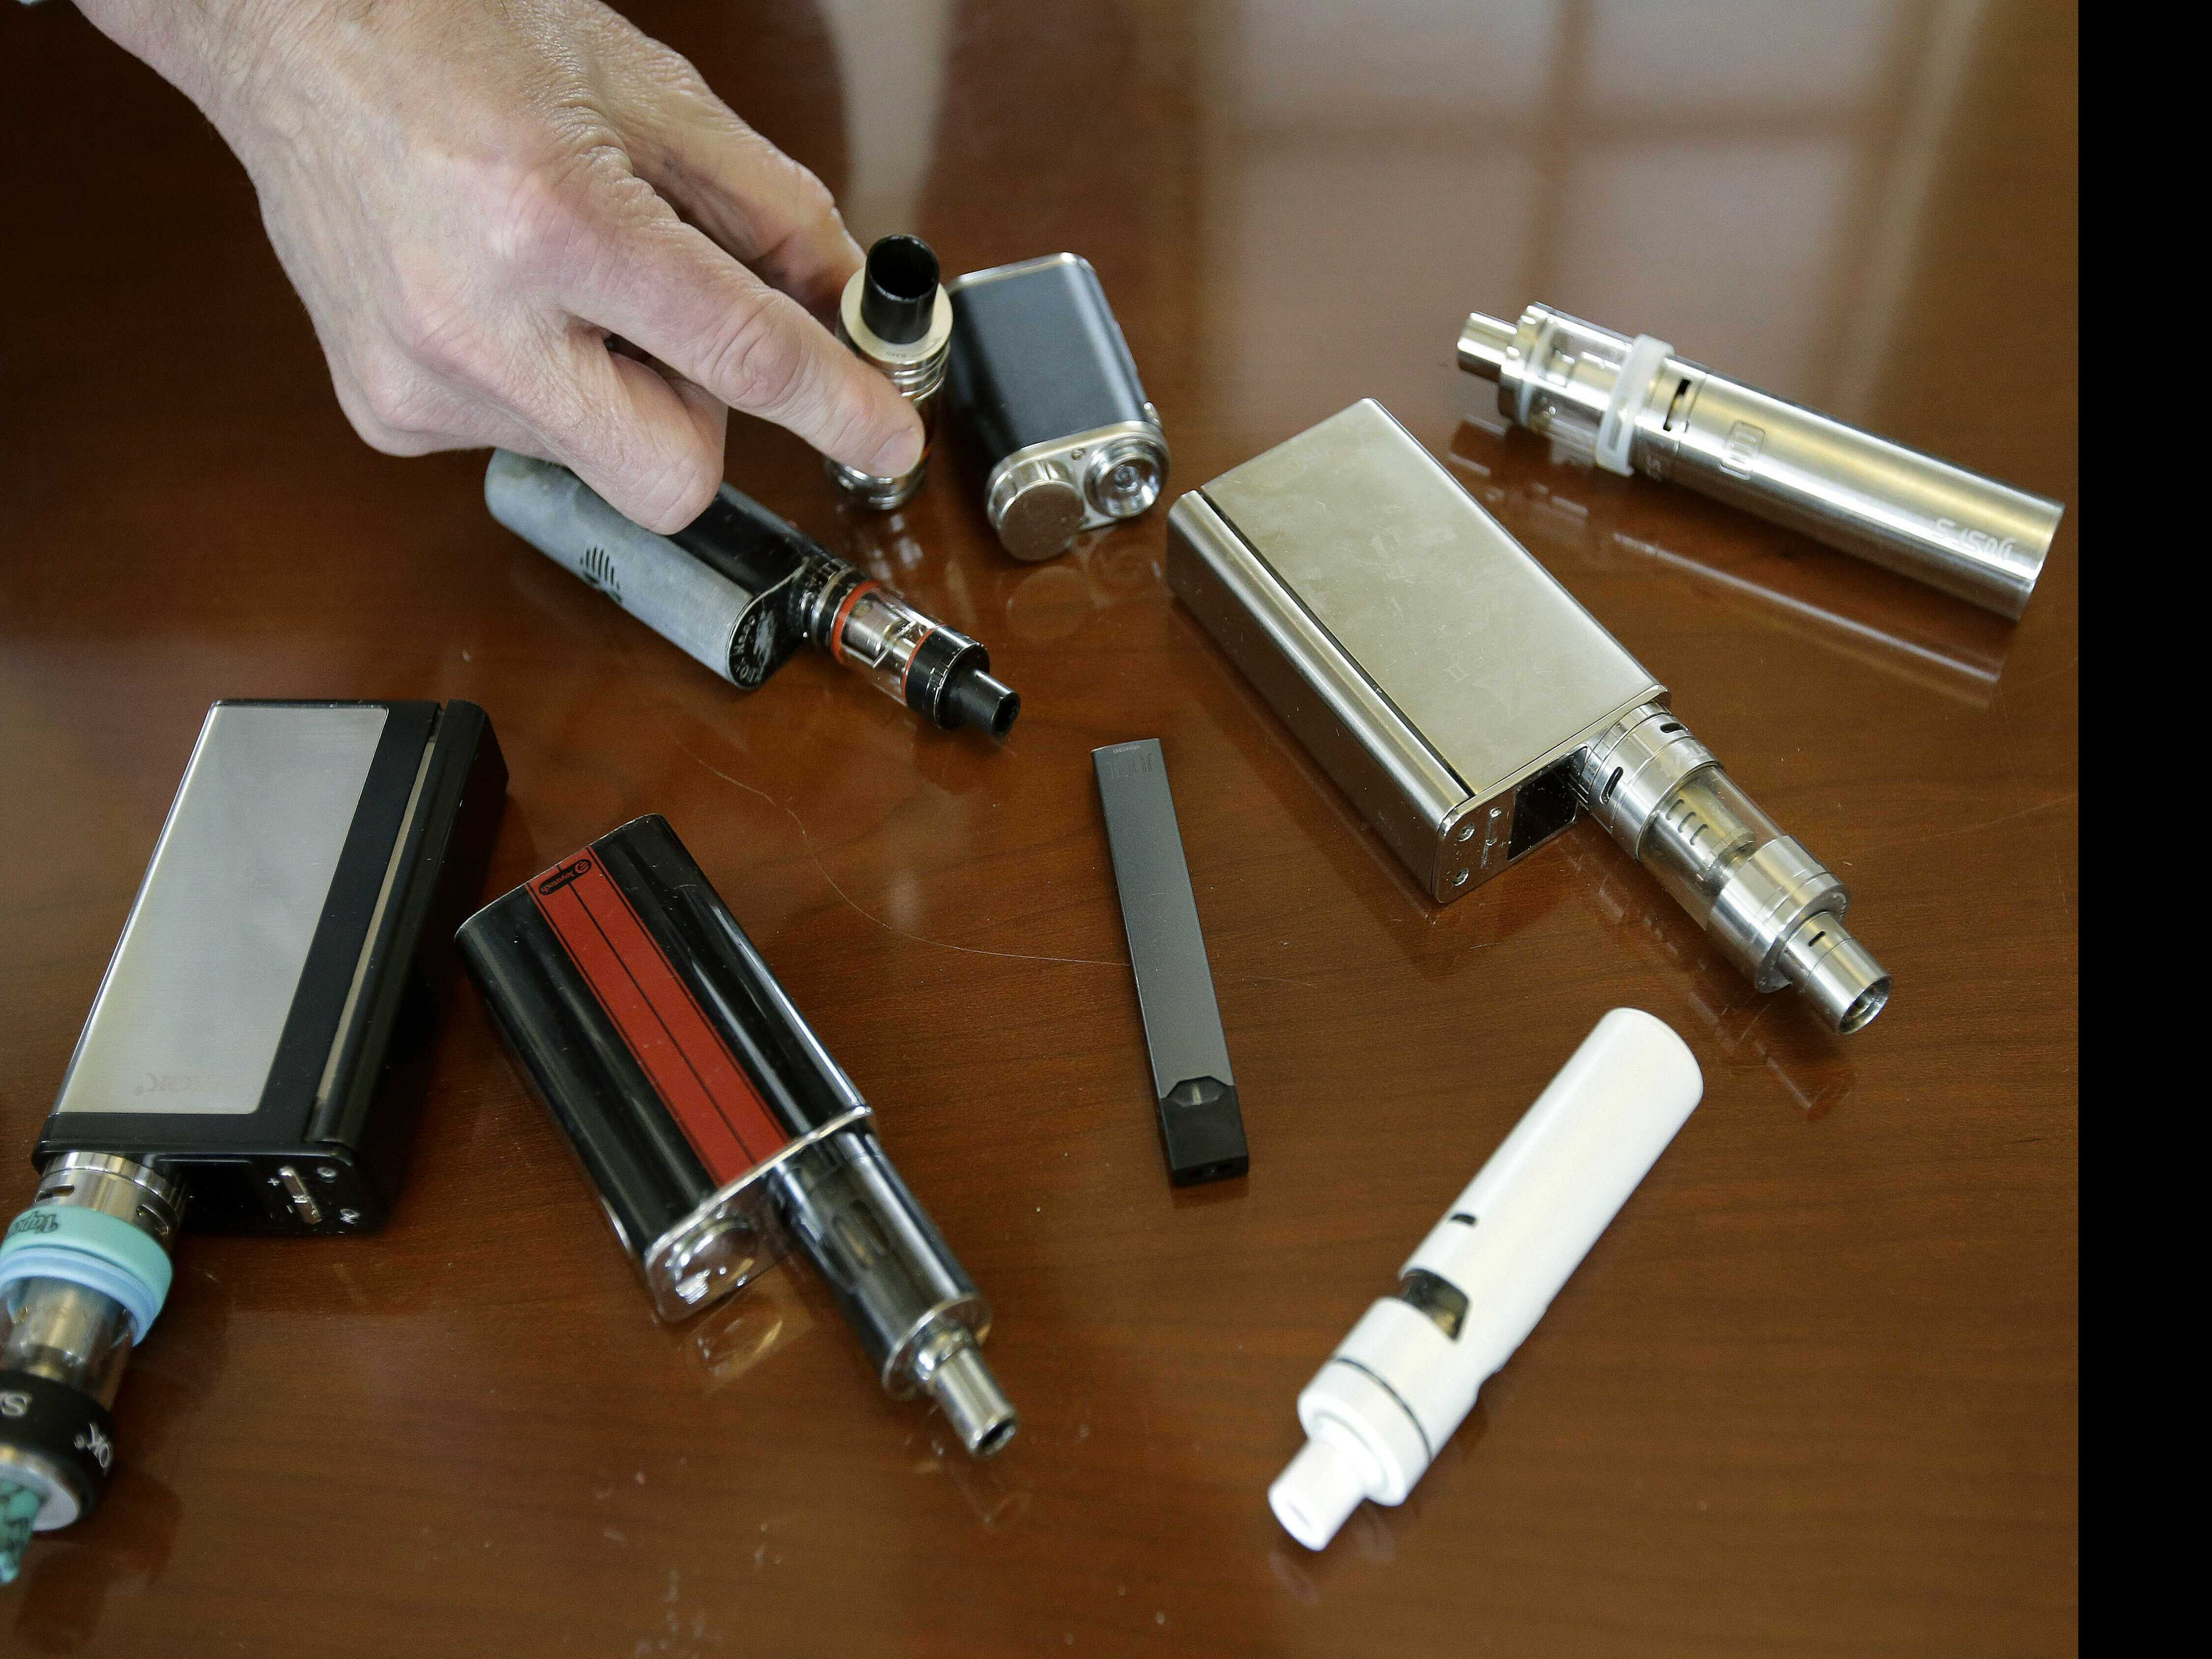 The Best Rx for Teens Addicted to Vaping? No One Knows